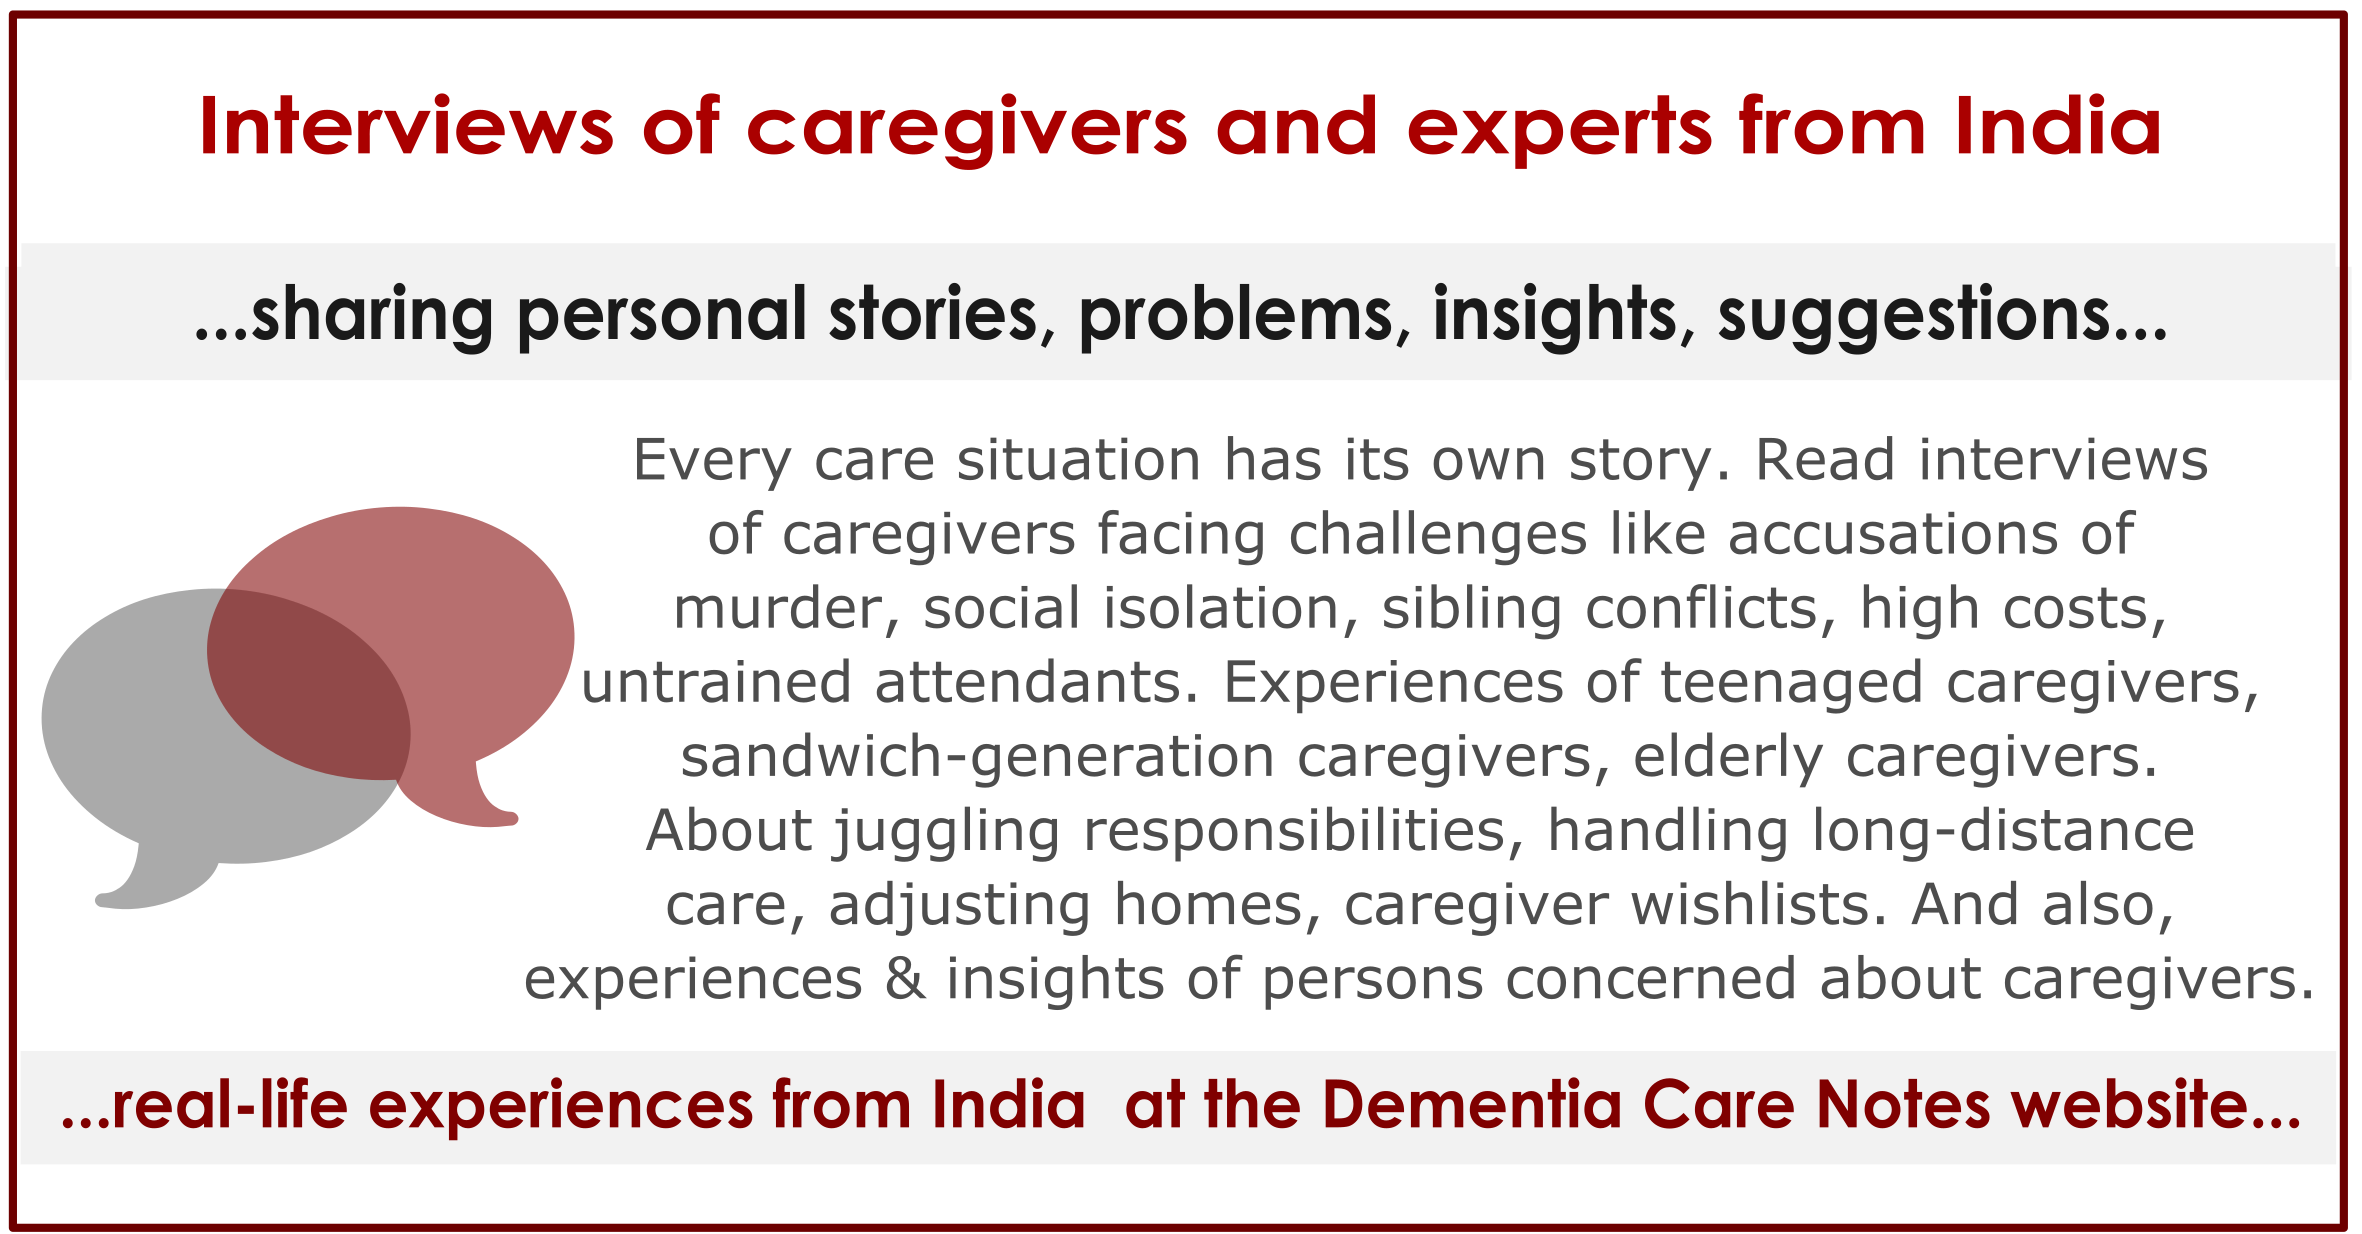 dementia wandering behavior focusing essay The student will be able to describe behaviors related to cognitive impairment trouble focusing, difficulty making decisions, feelings of disorientation wandering - walking aimlessly around the facility content.